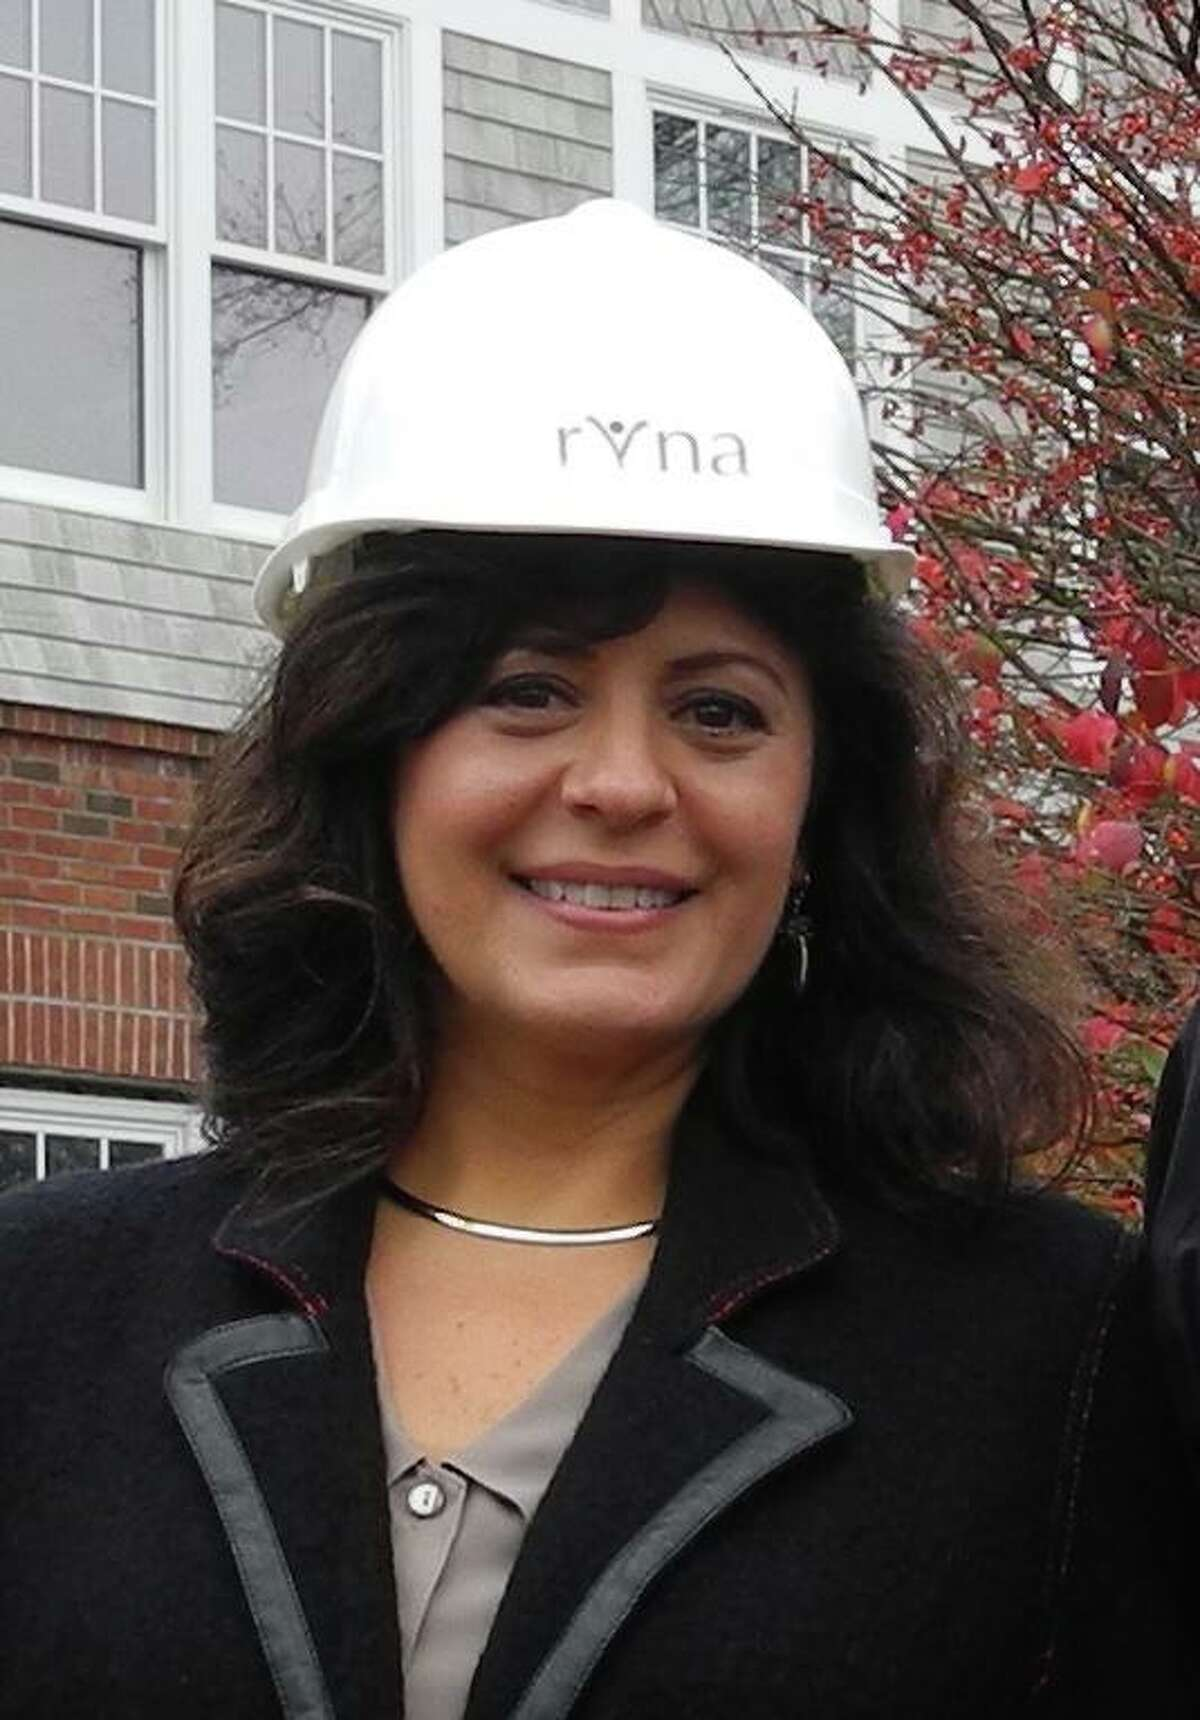 Theresa Santoro, shown here in a hard hat while showing off a building project in 2015, will continue to lead the enrlarged RVNAhealth after its merger with Beth and New Milford nursign agencies.